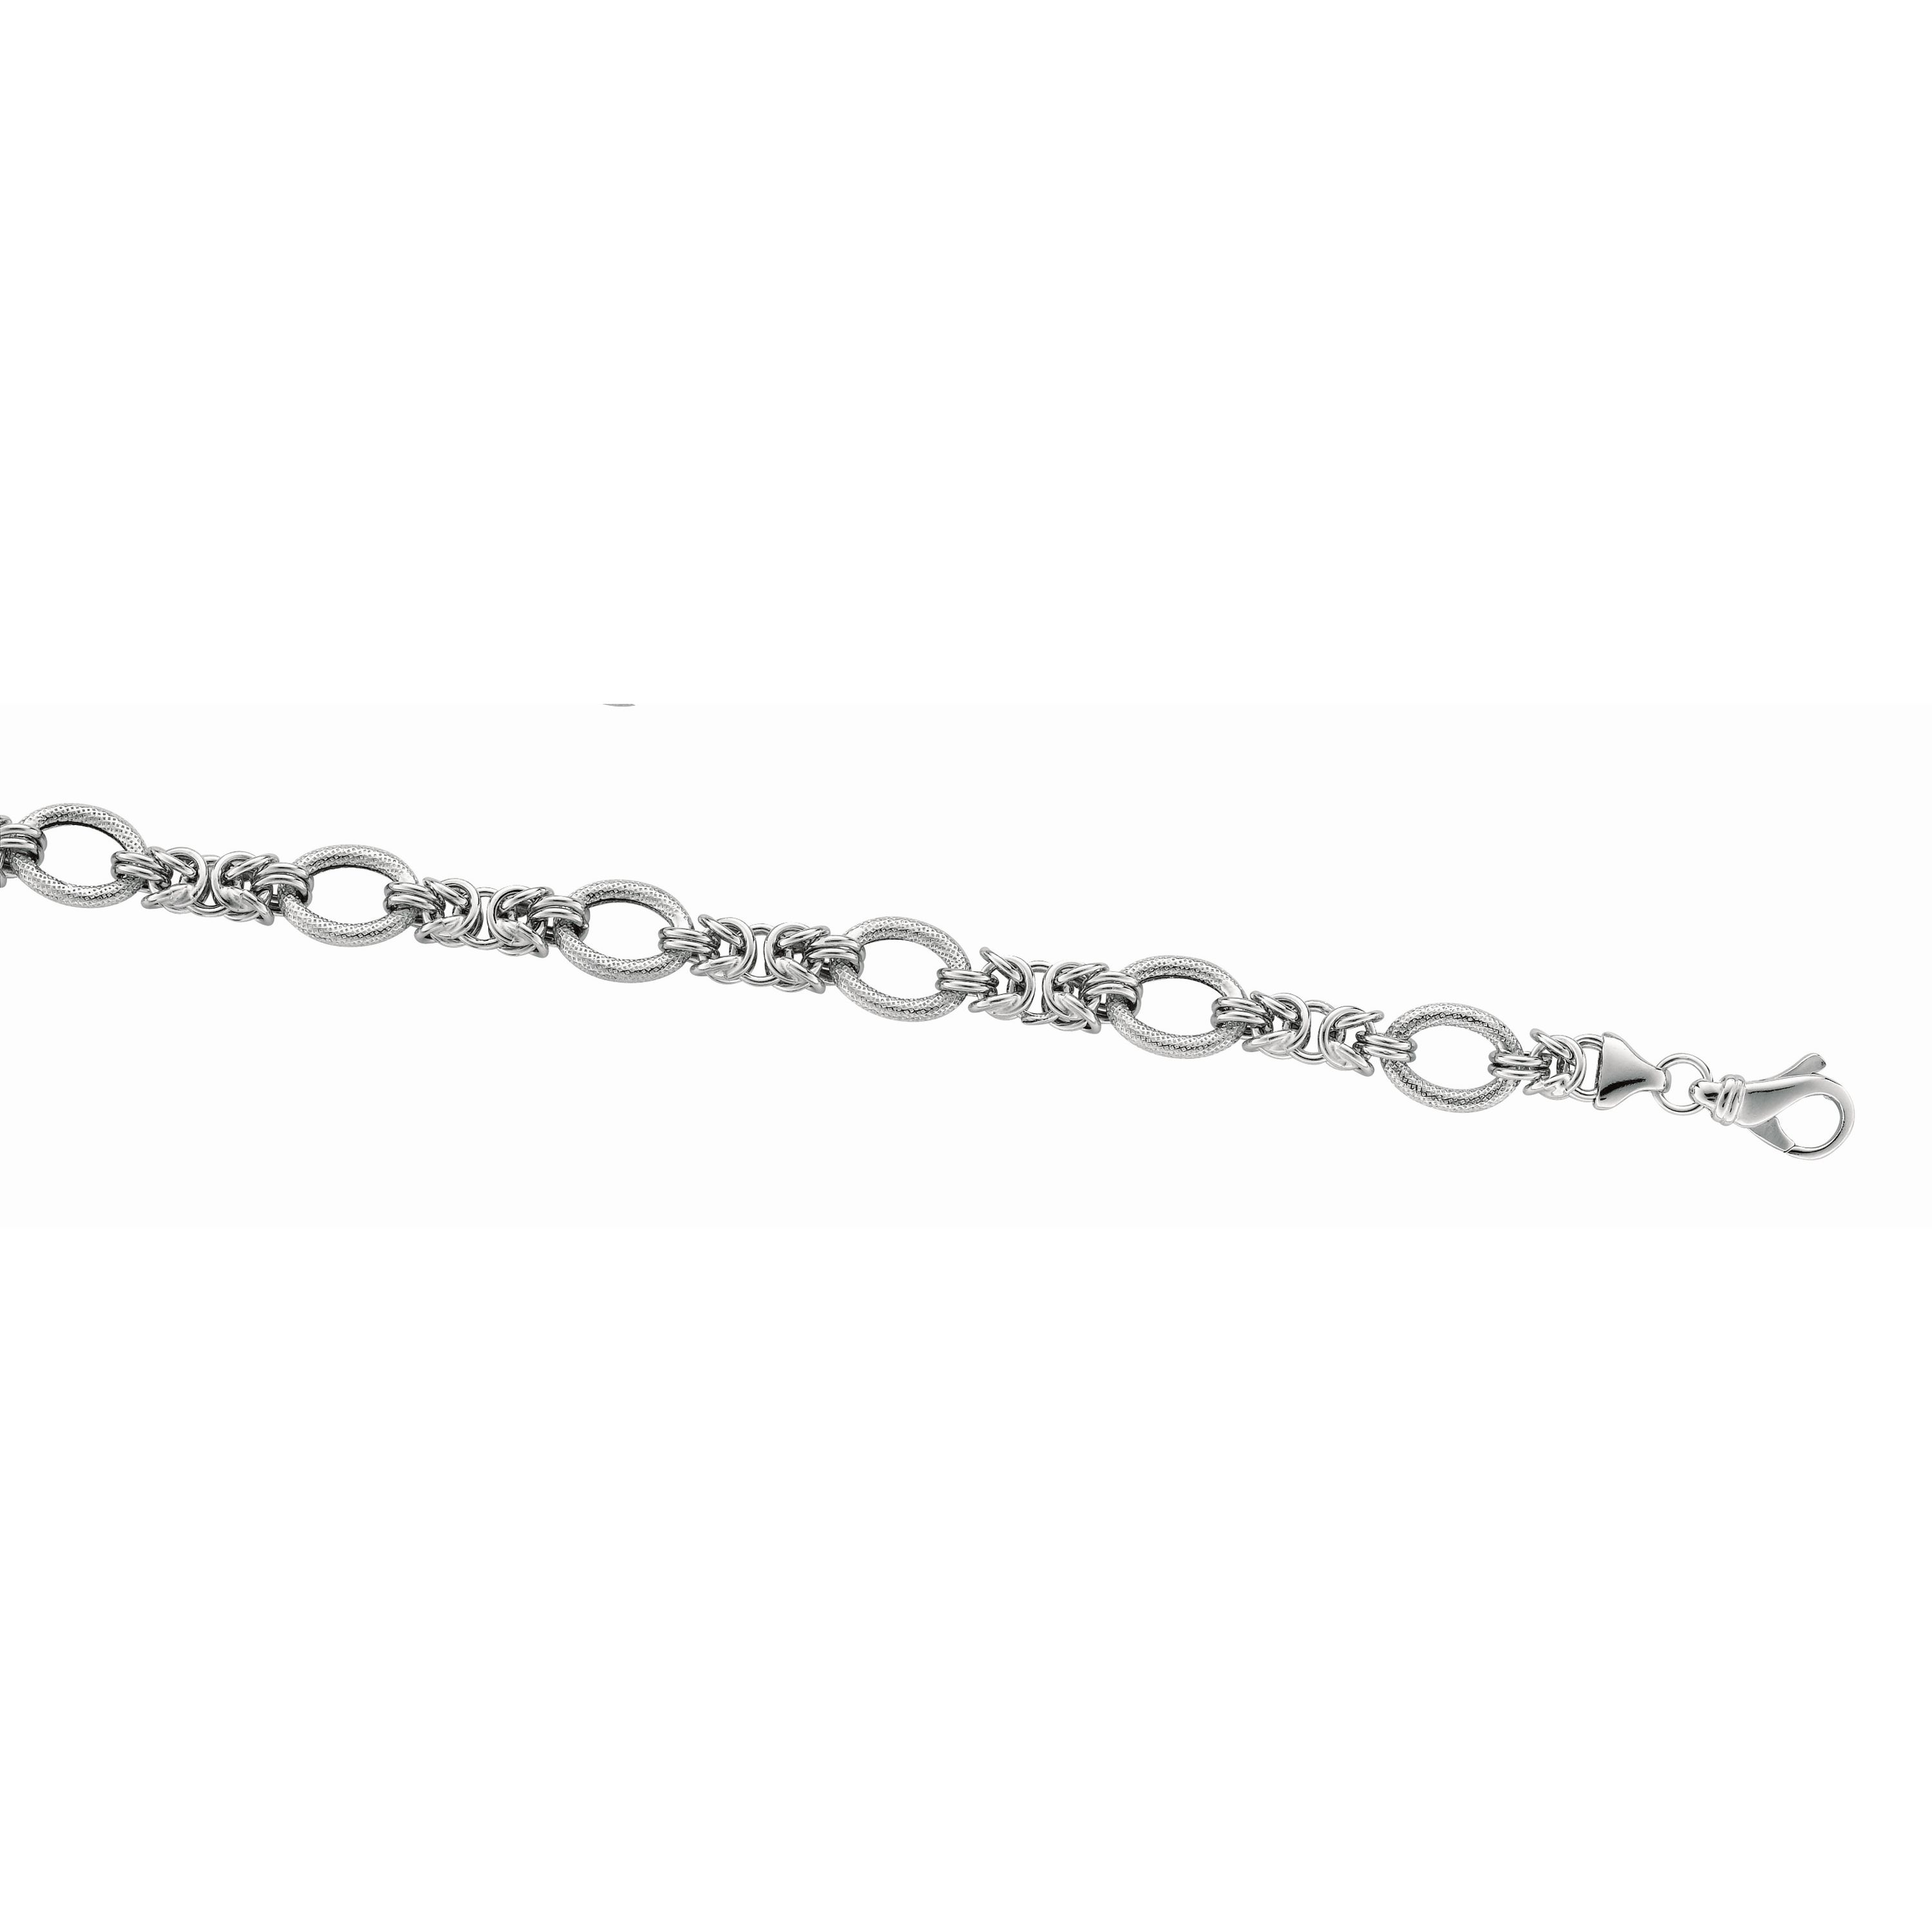 Sterling Silver With Rhodium Finish Bracelet James Wolf Jewelers Mason, OH